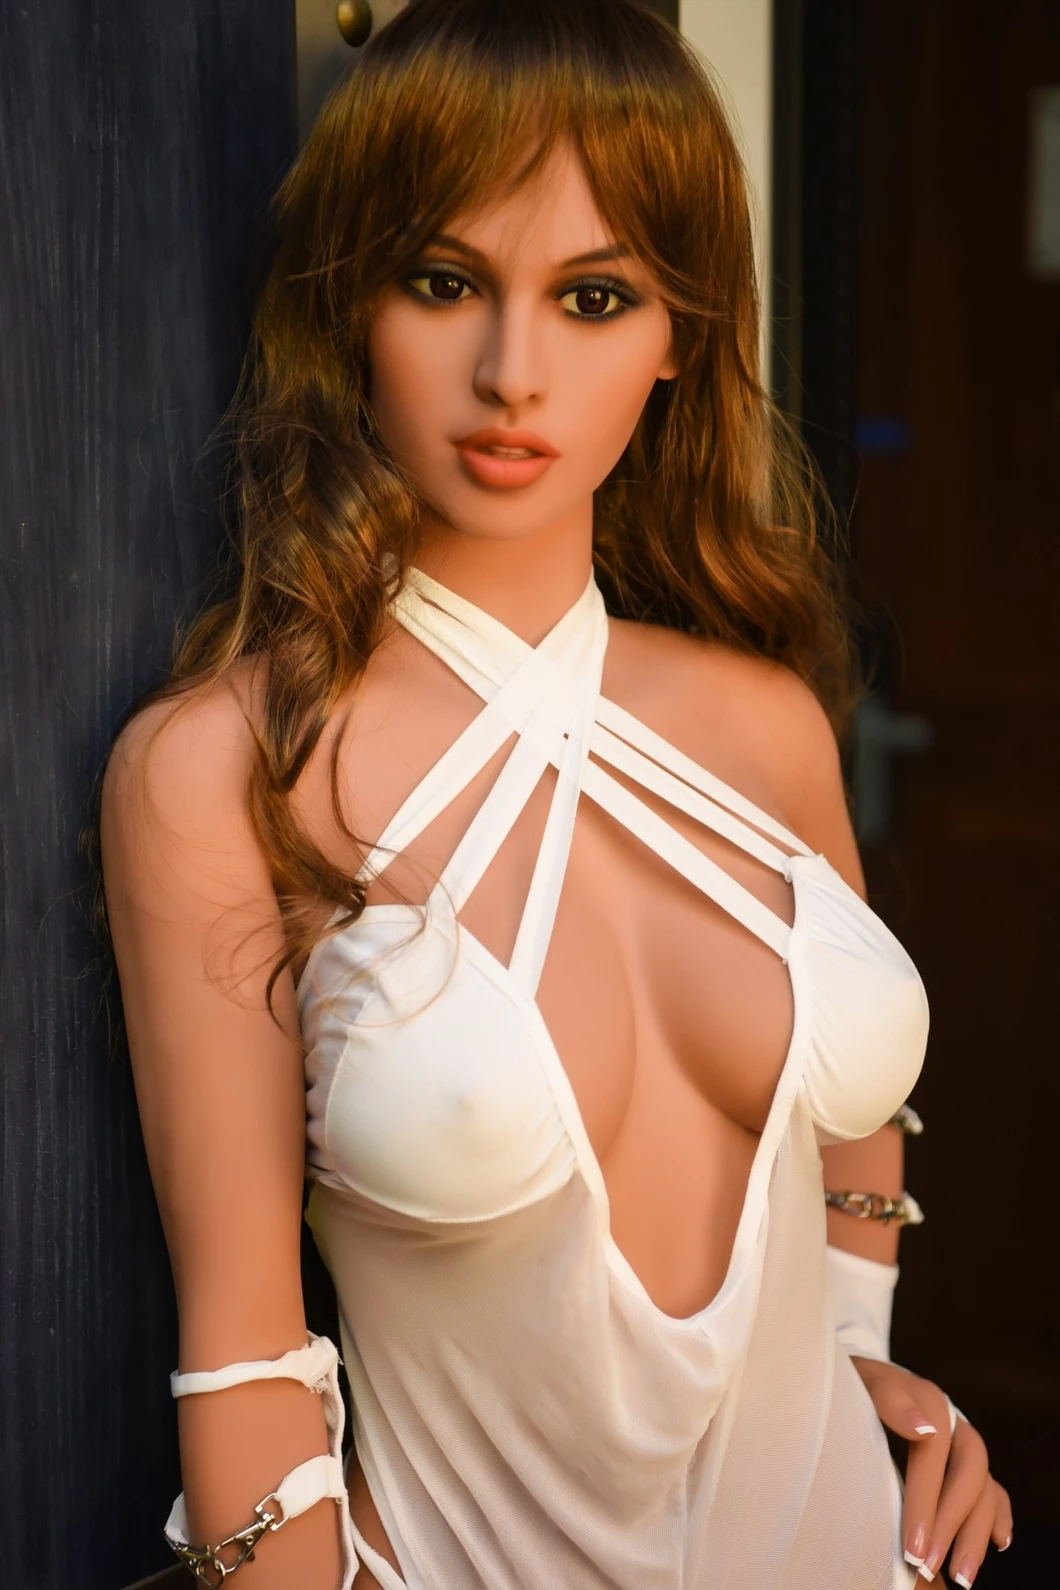 158CM 5FT2 Sex Doll Sharon